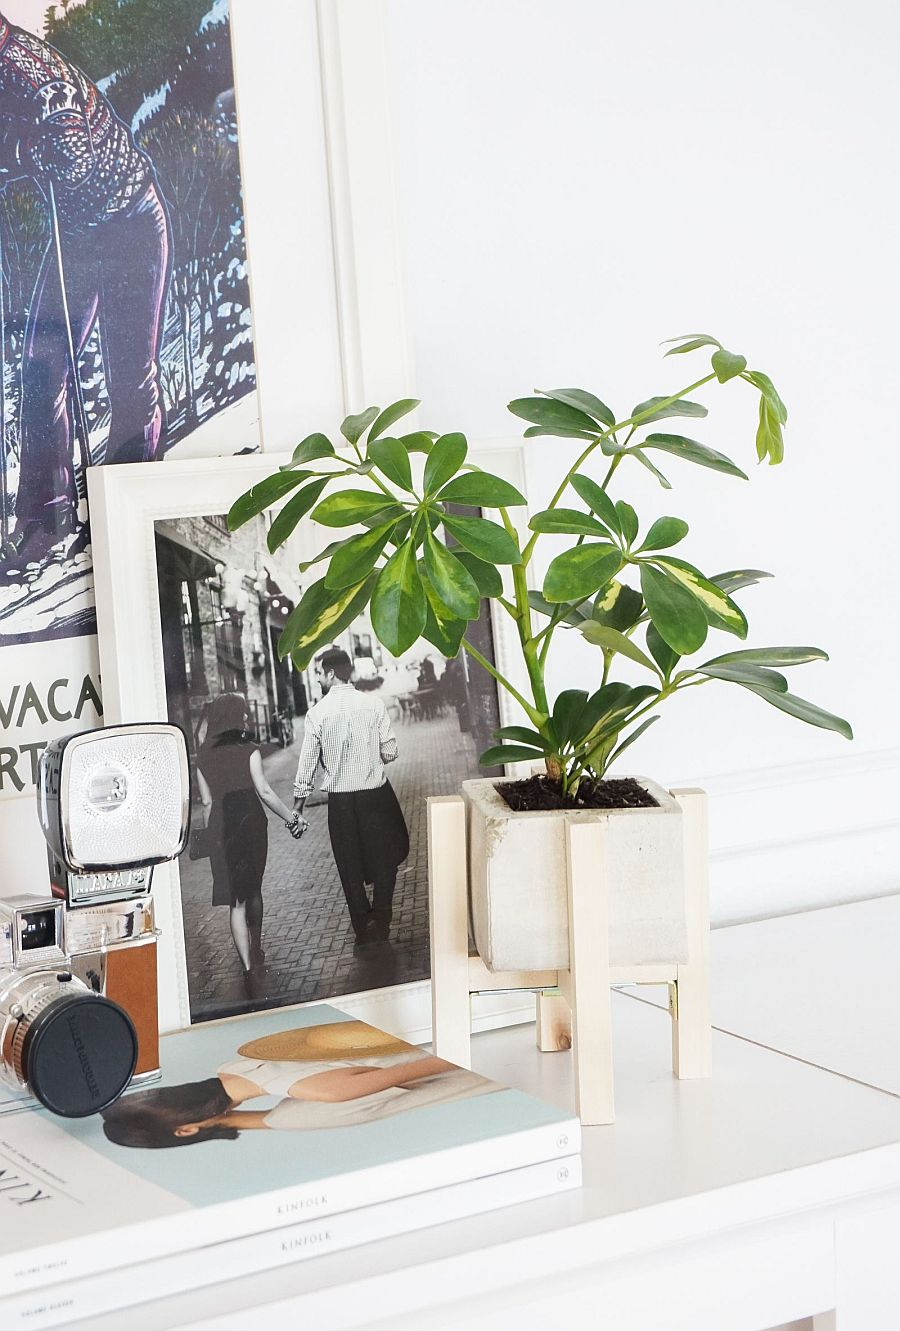 Usher in greenery with a DIY concrete planter that has a wood stand